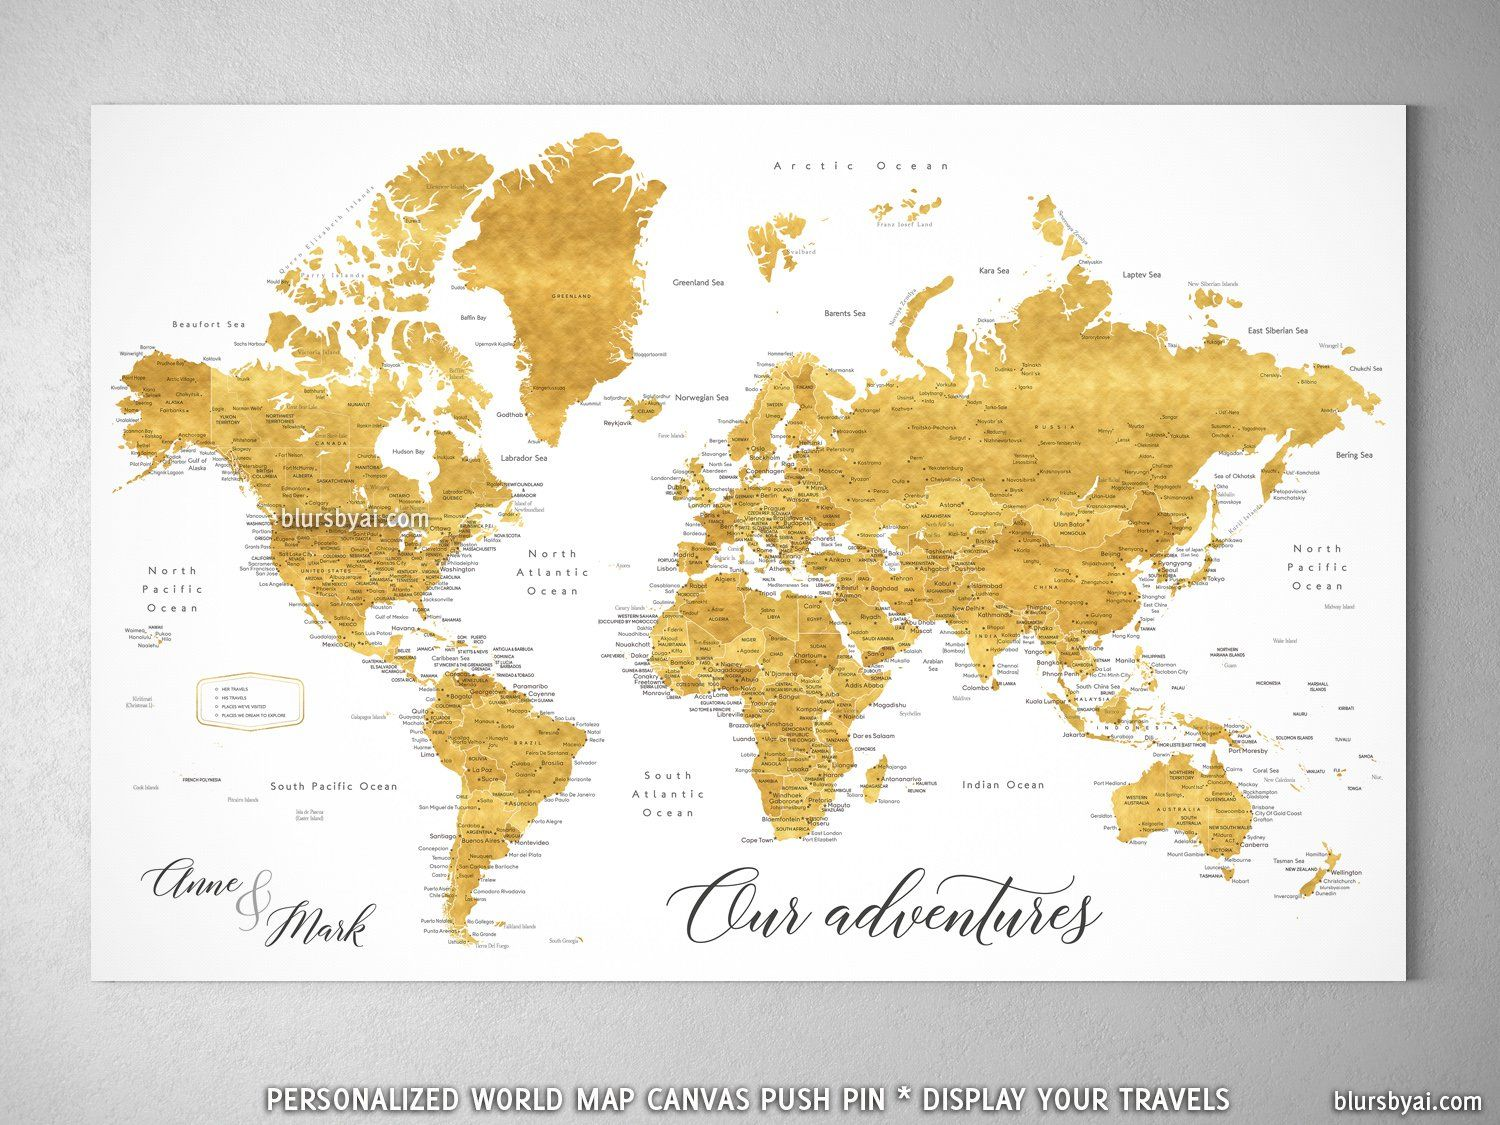 Personalized world map with cities canvas print or push pin map in personalized world map with cities canvas print or push pin map in shades of gold rossie gumiabroncs Image collections